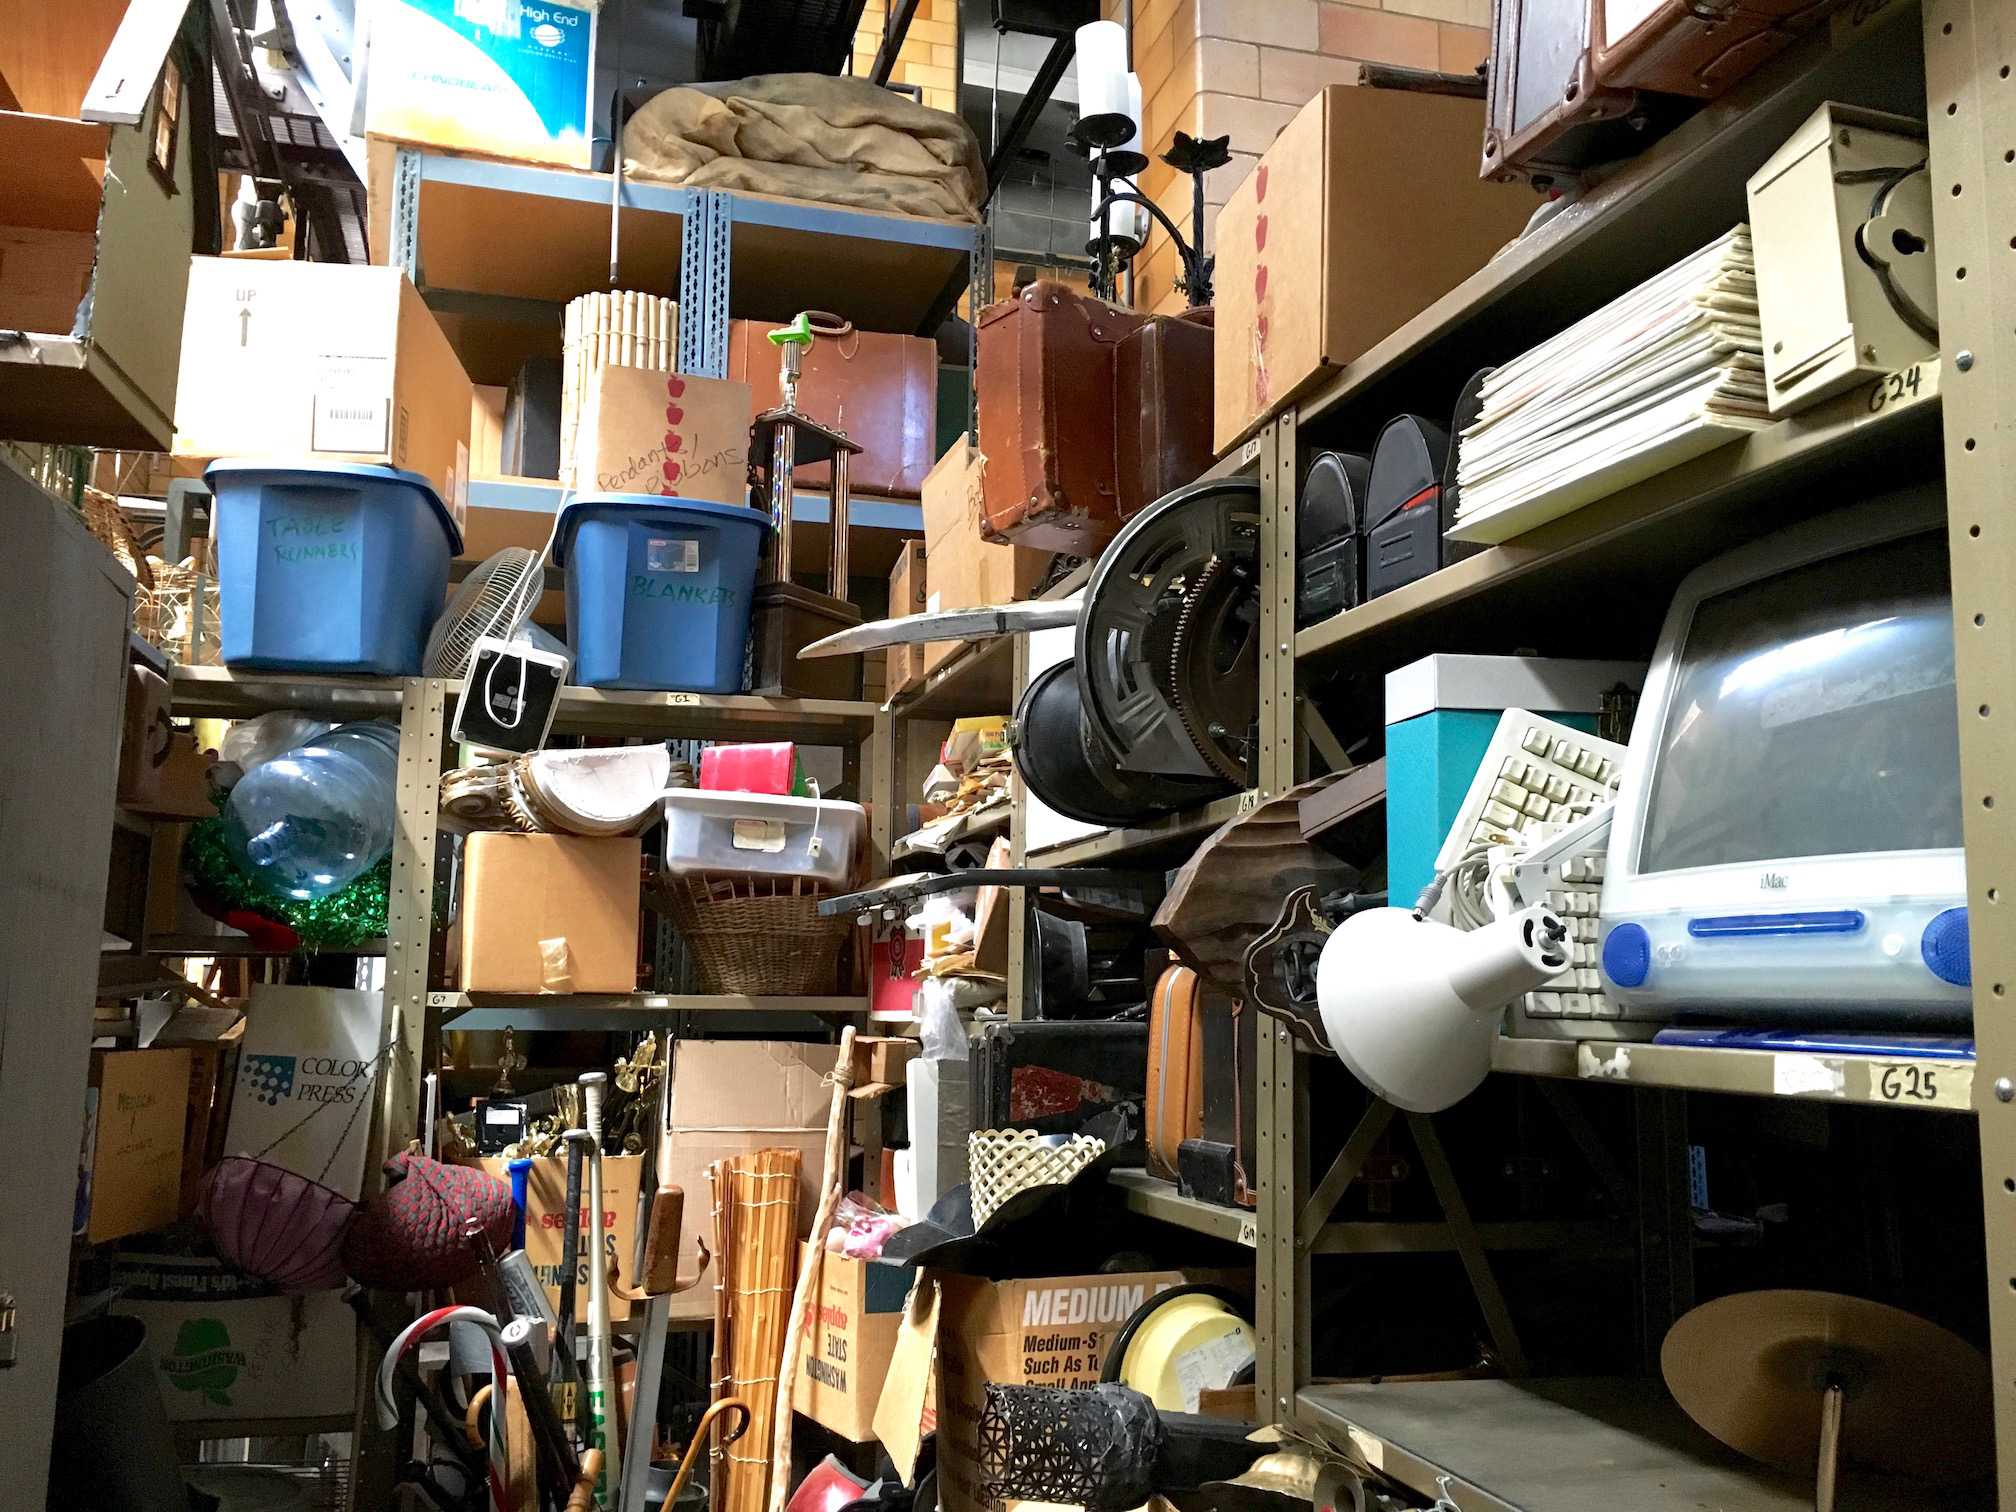 %22Old+Heat%22+has+now+become+a+storage+location+for+props+from+the+Theatre+Arts+department